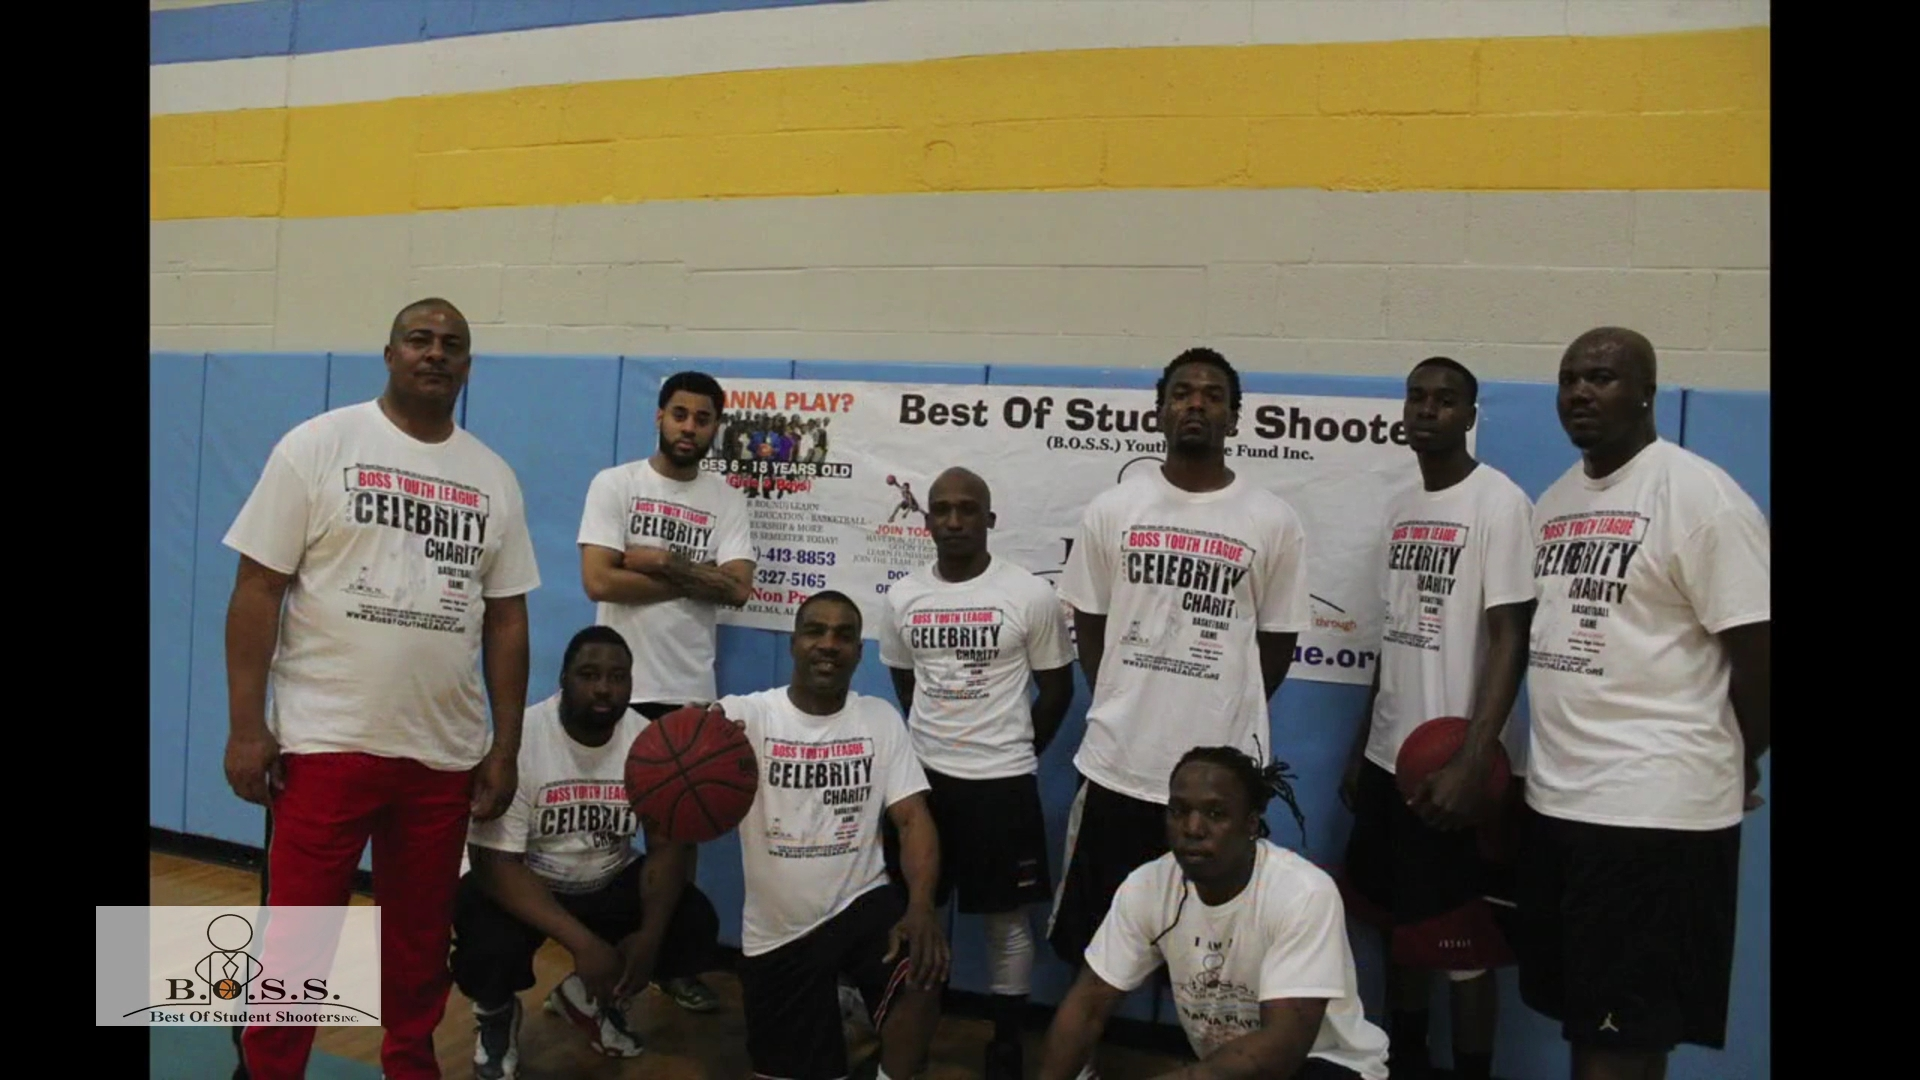 2nd Annual Celebrity Charity Game